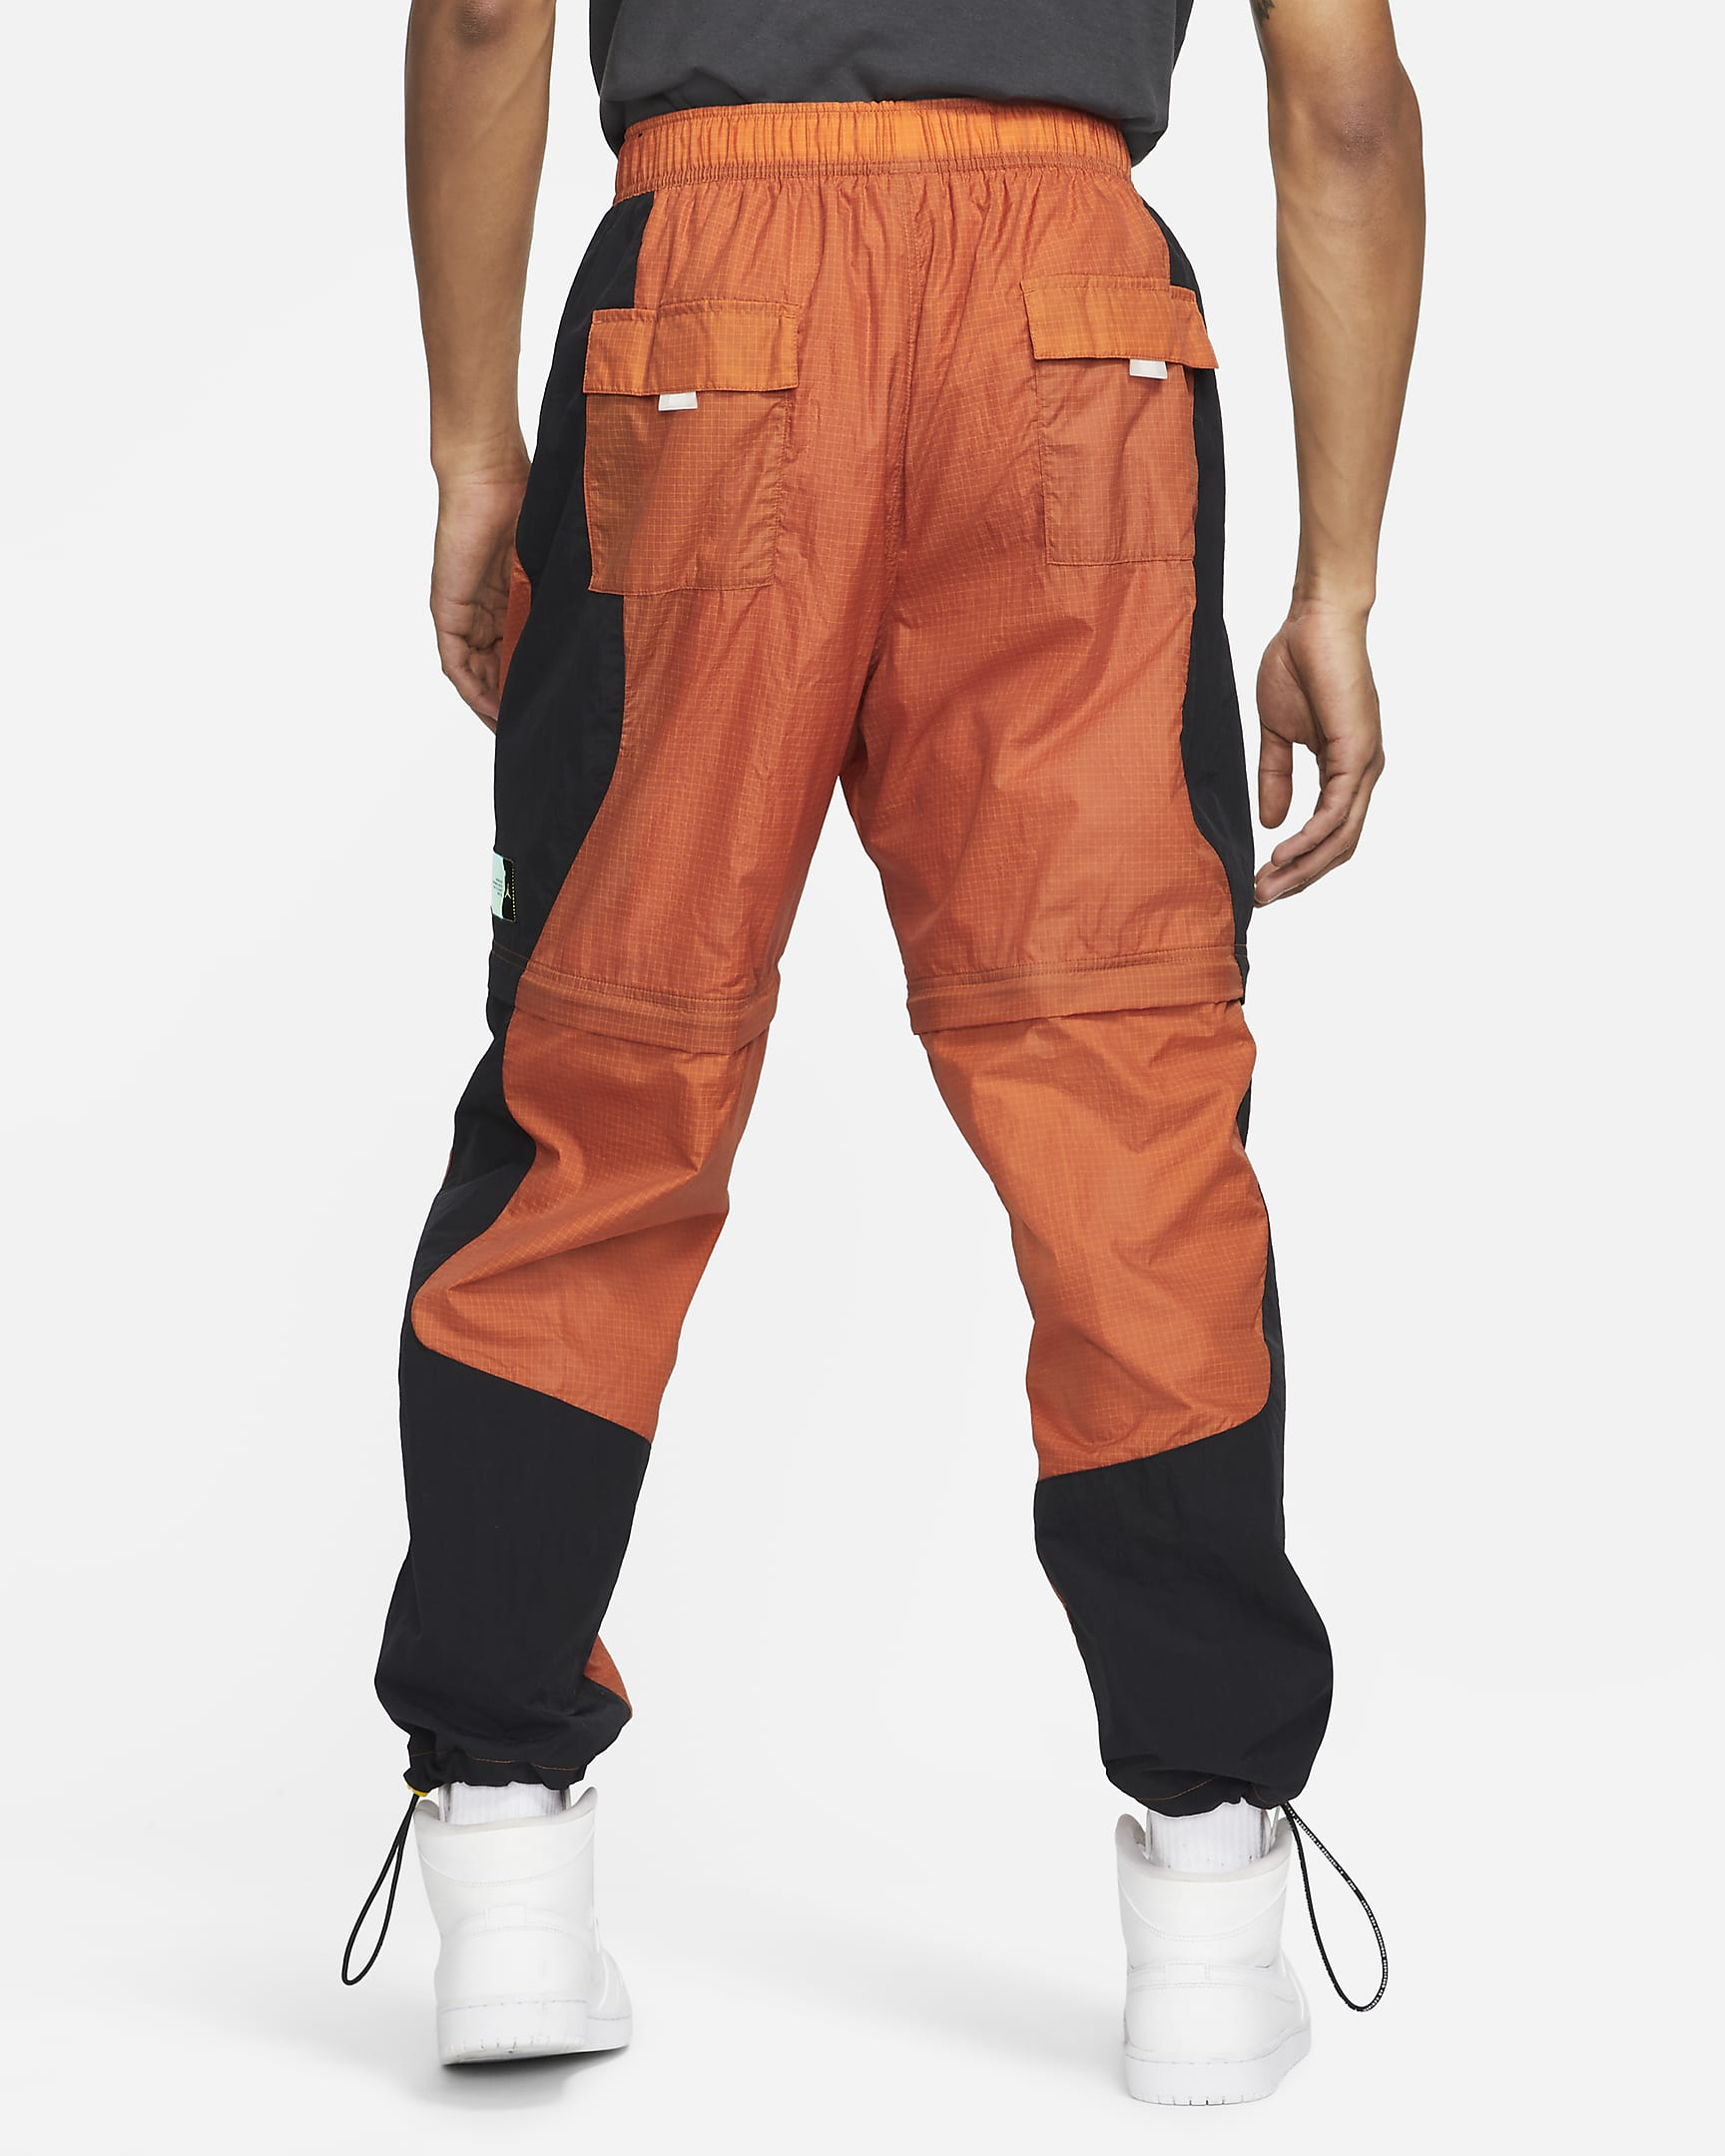 jordan-23-engineered-mens-convertible-track-pants-zWp7wJ-1